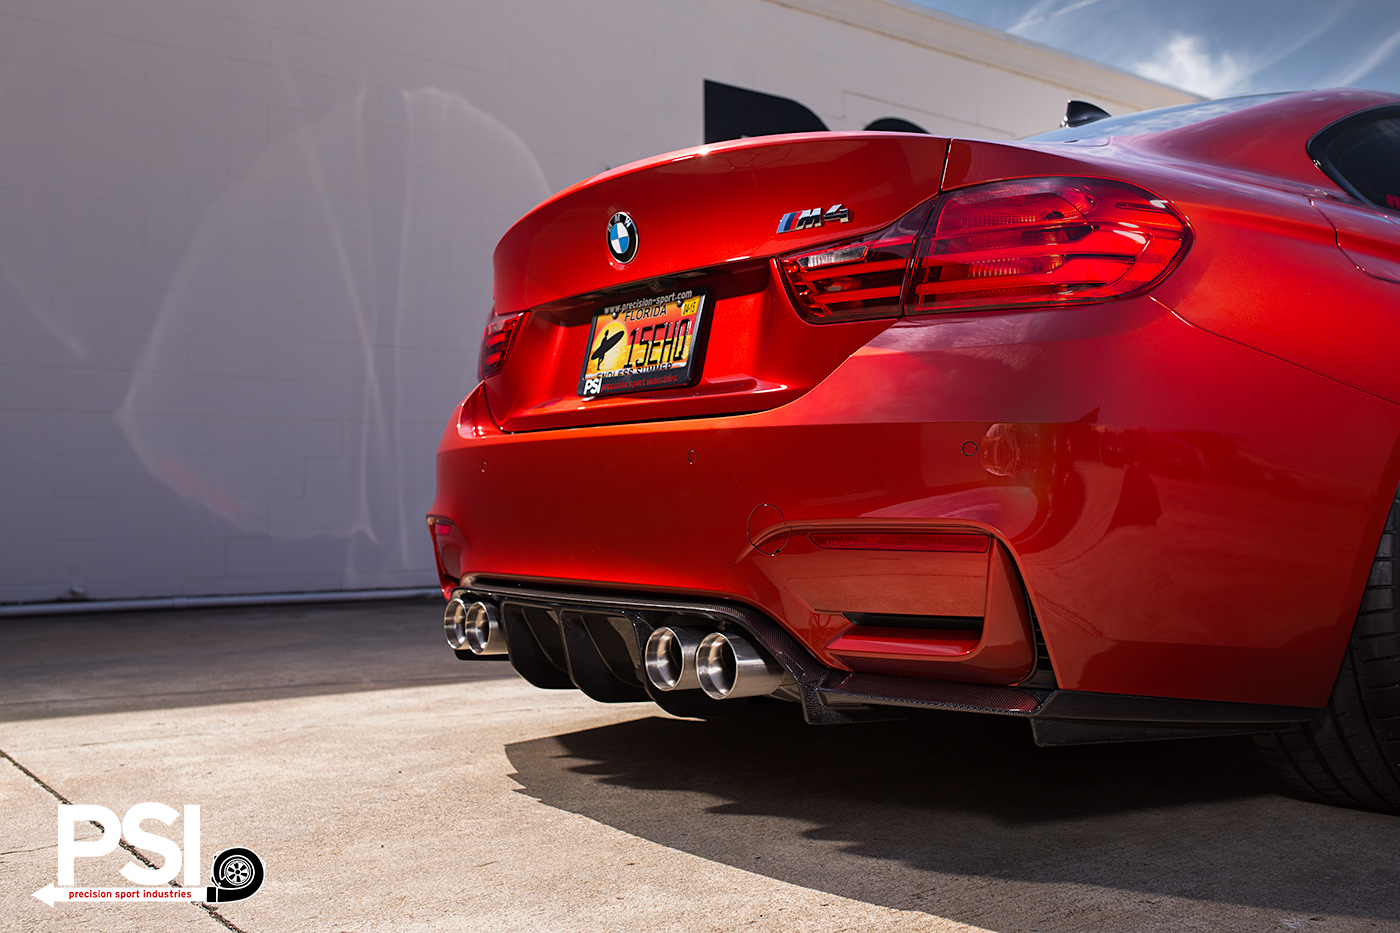 Custom Bmw M Introduced By Psi Ahead Of Sema Debut Photo Gallery